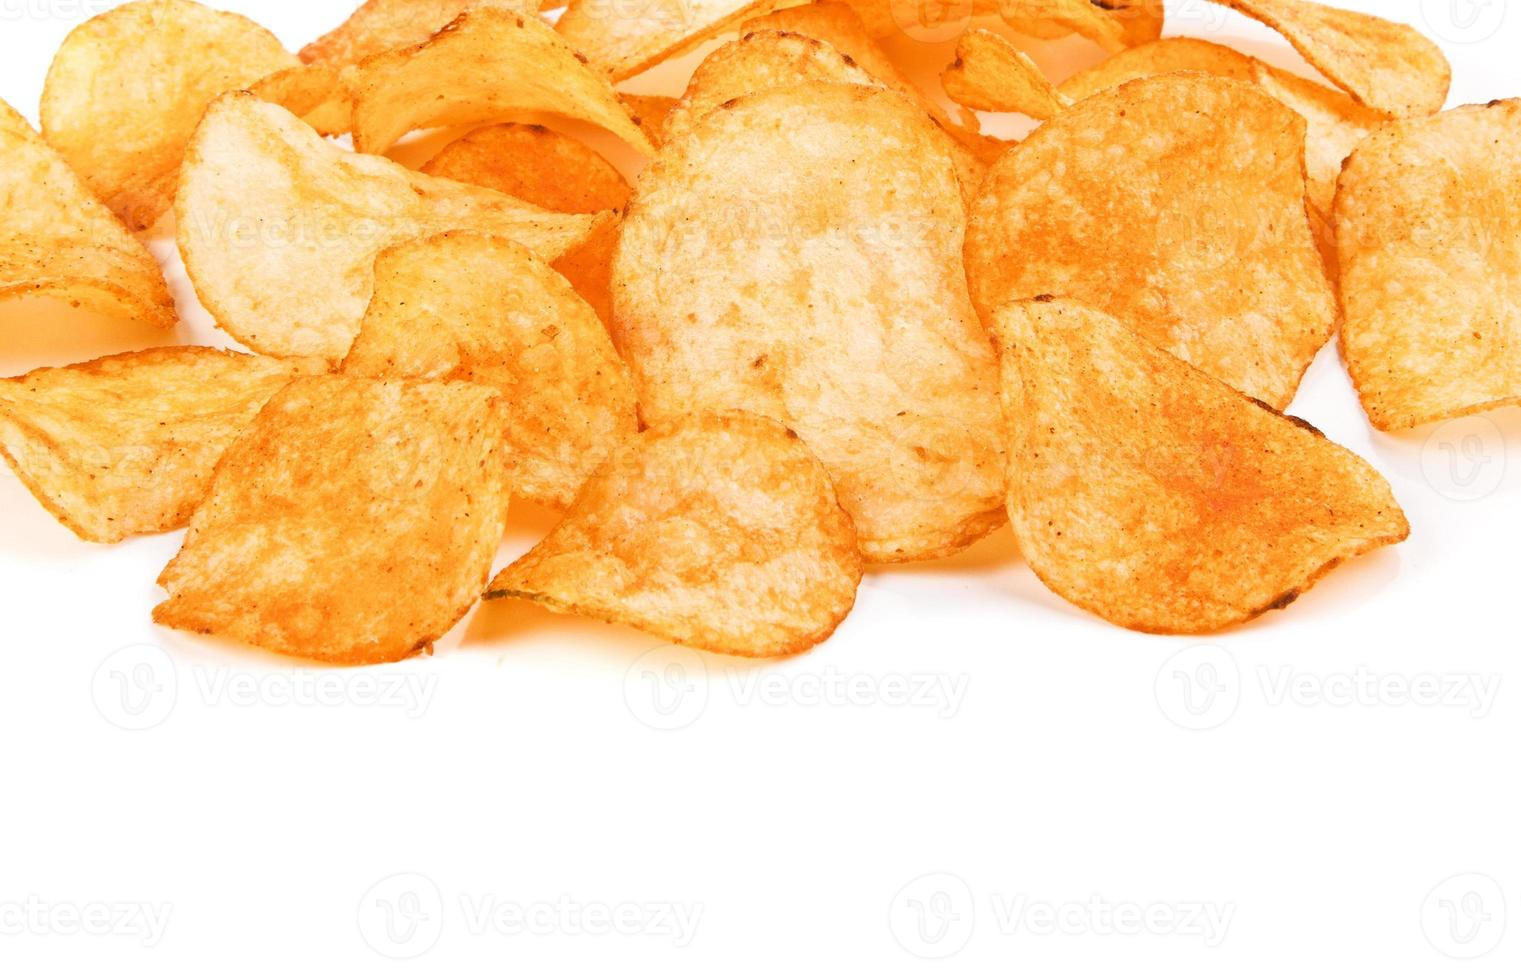 chips close-up foto